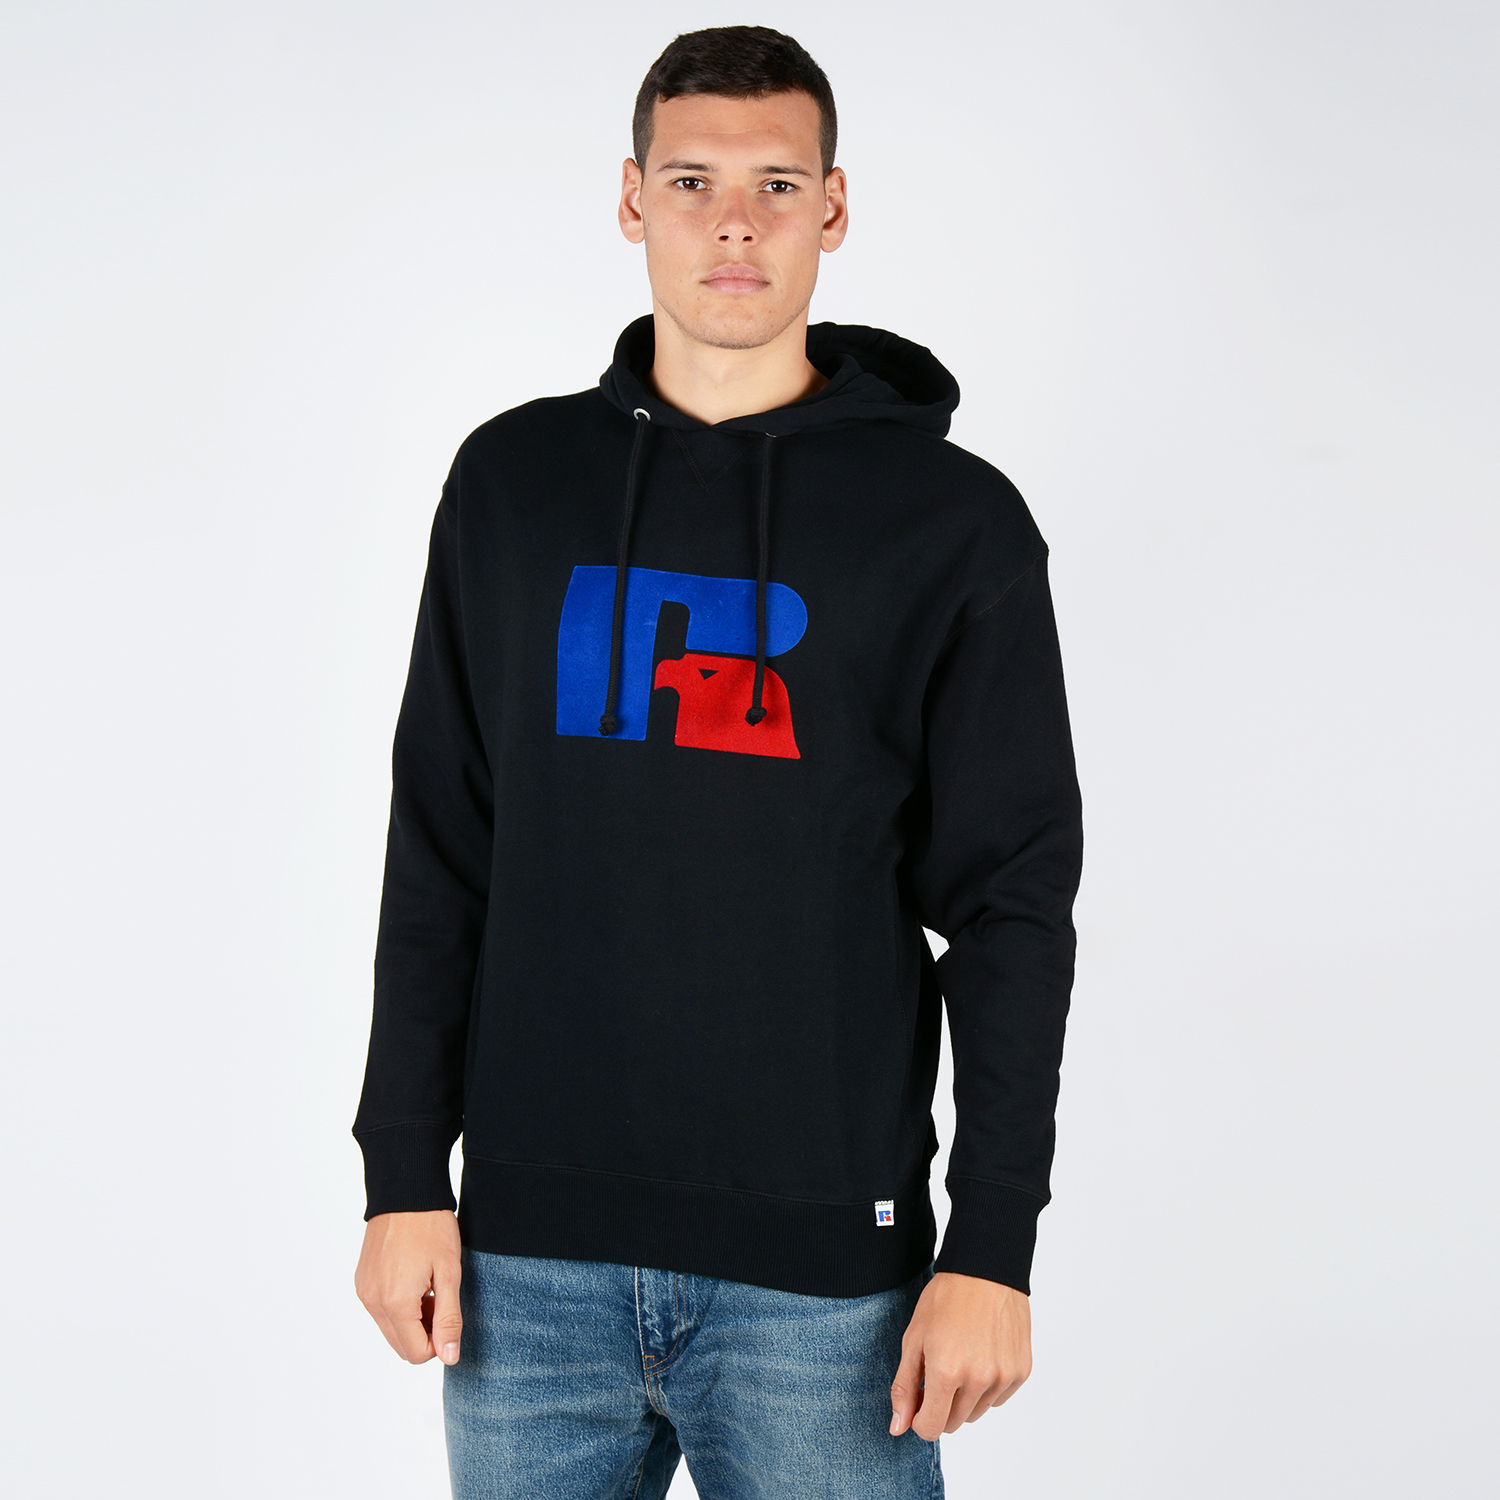 Russell MIKE - LARGE FLOCK LOGO HOODY